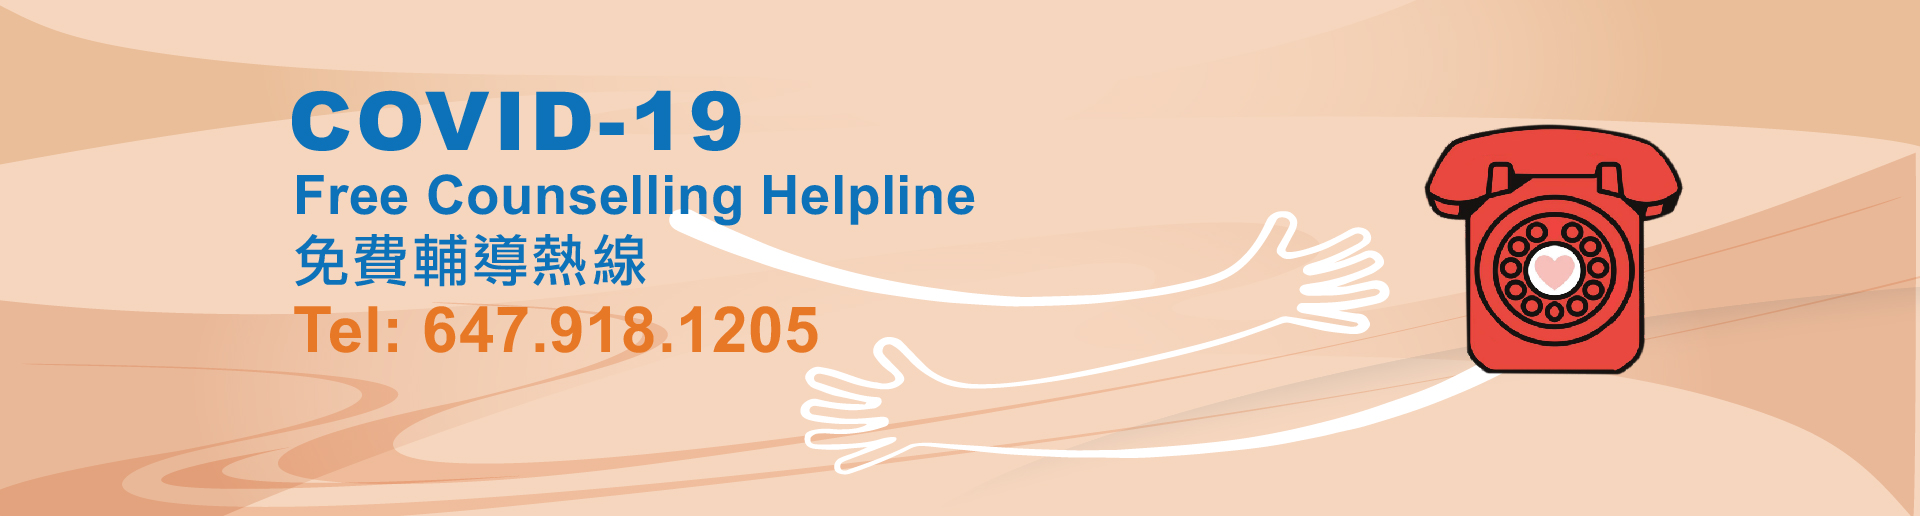 Covid-19 Free Counselling Helpline